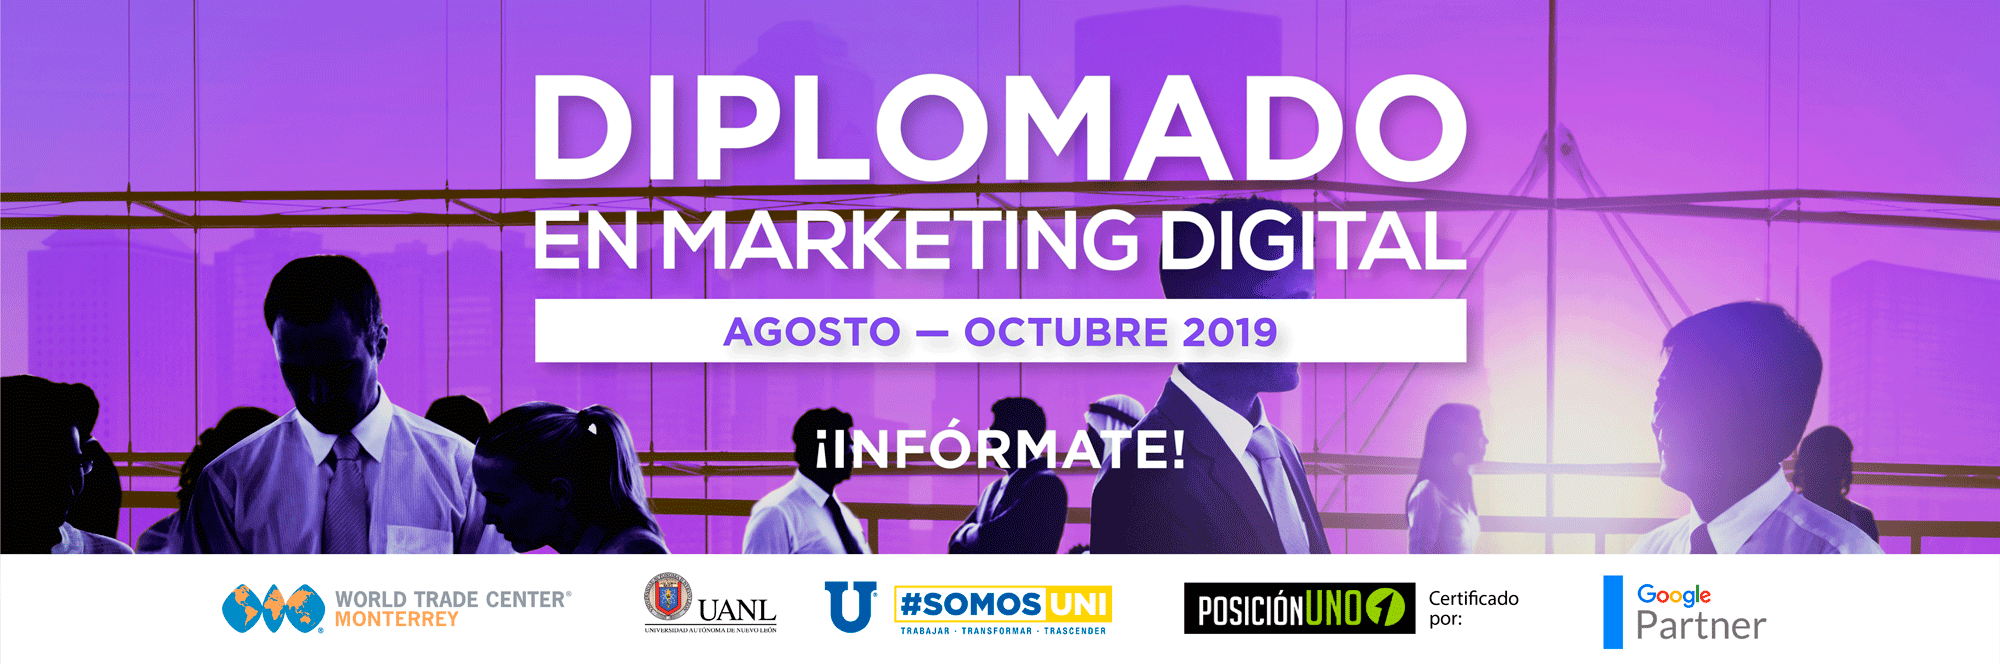 Diplomado en Marketing Digital 2019